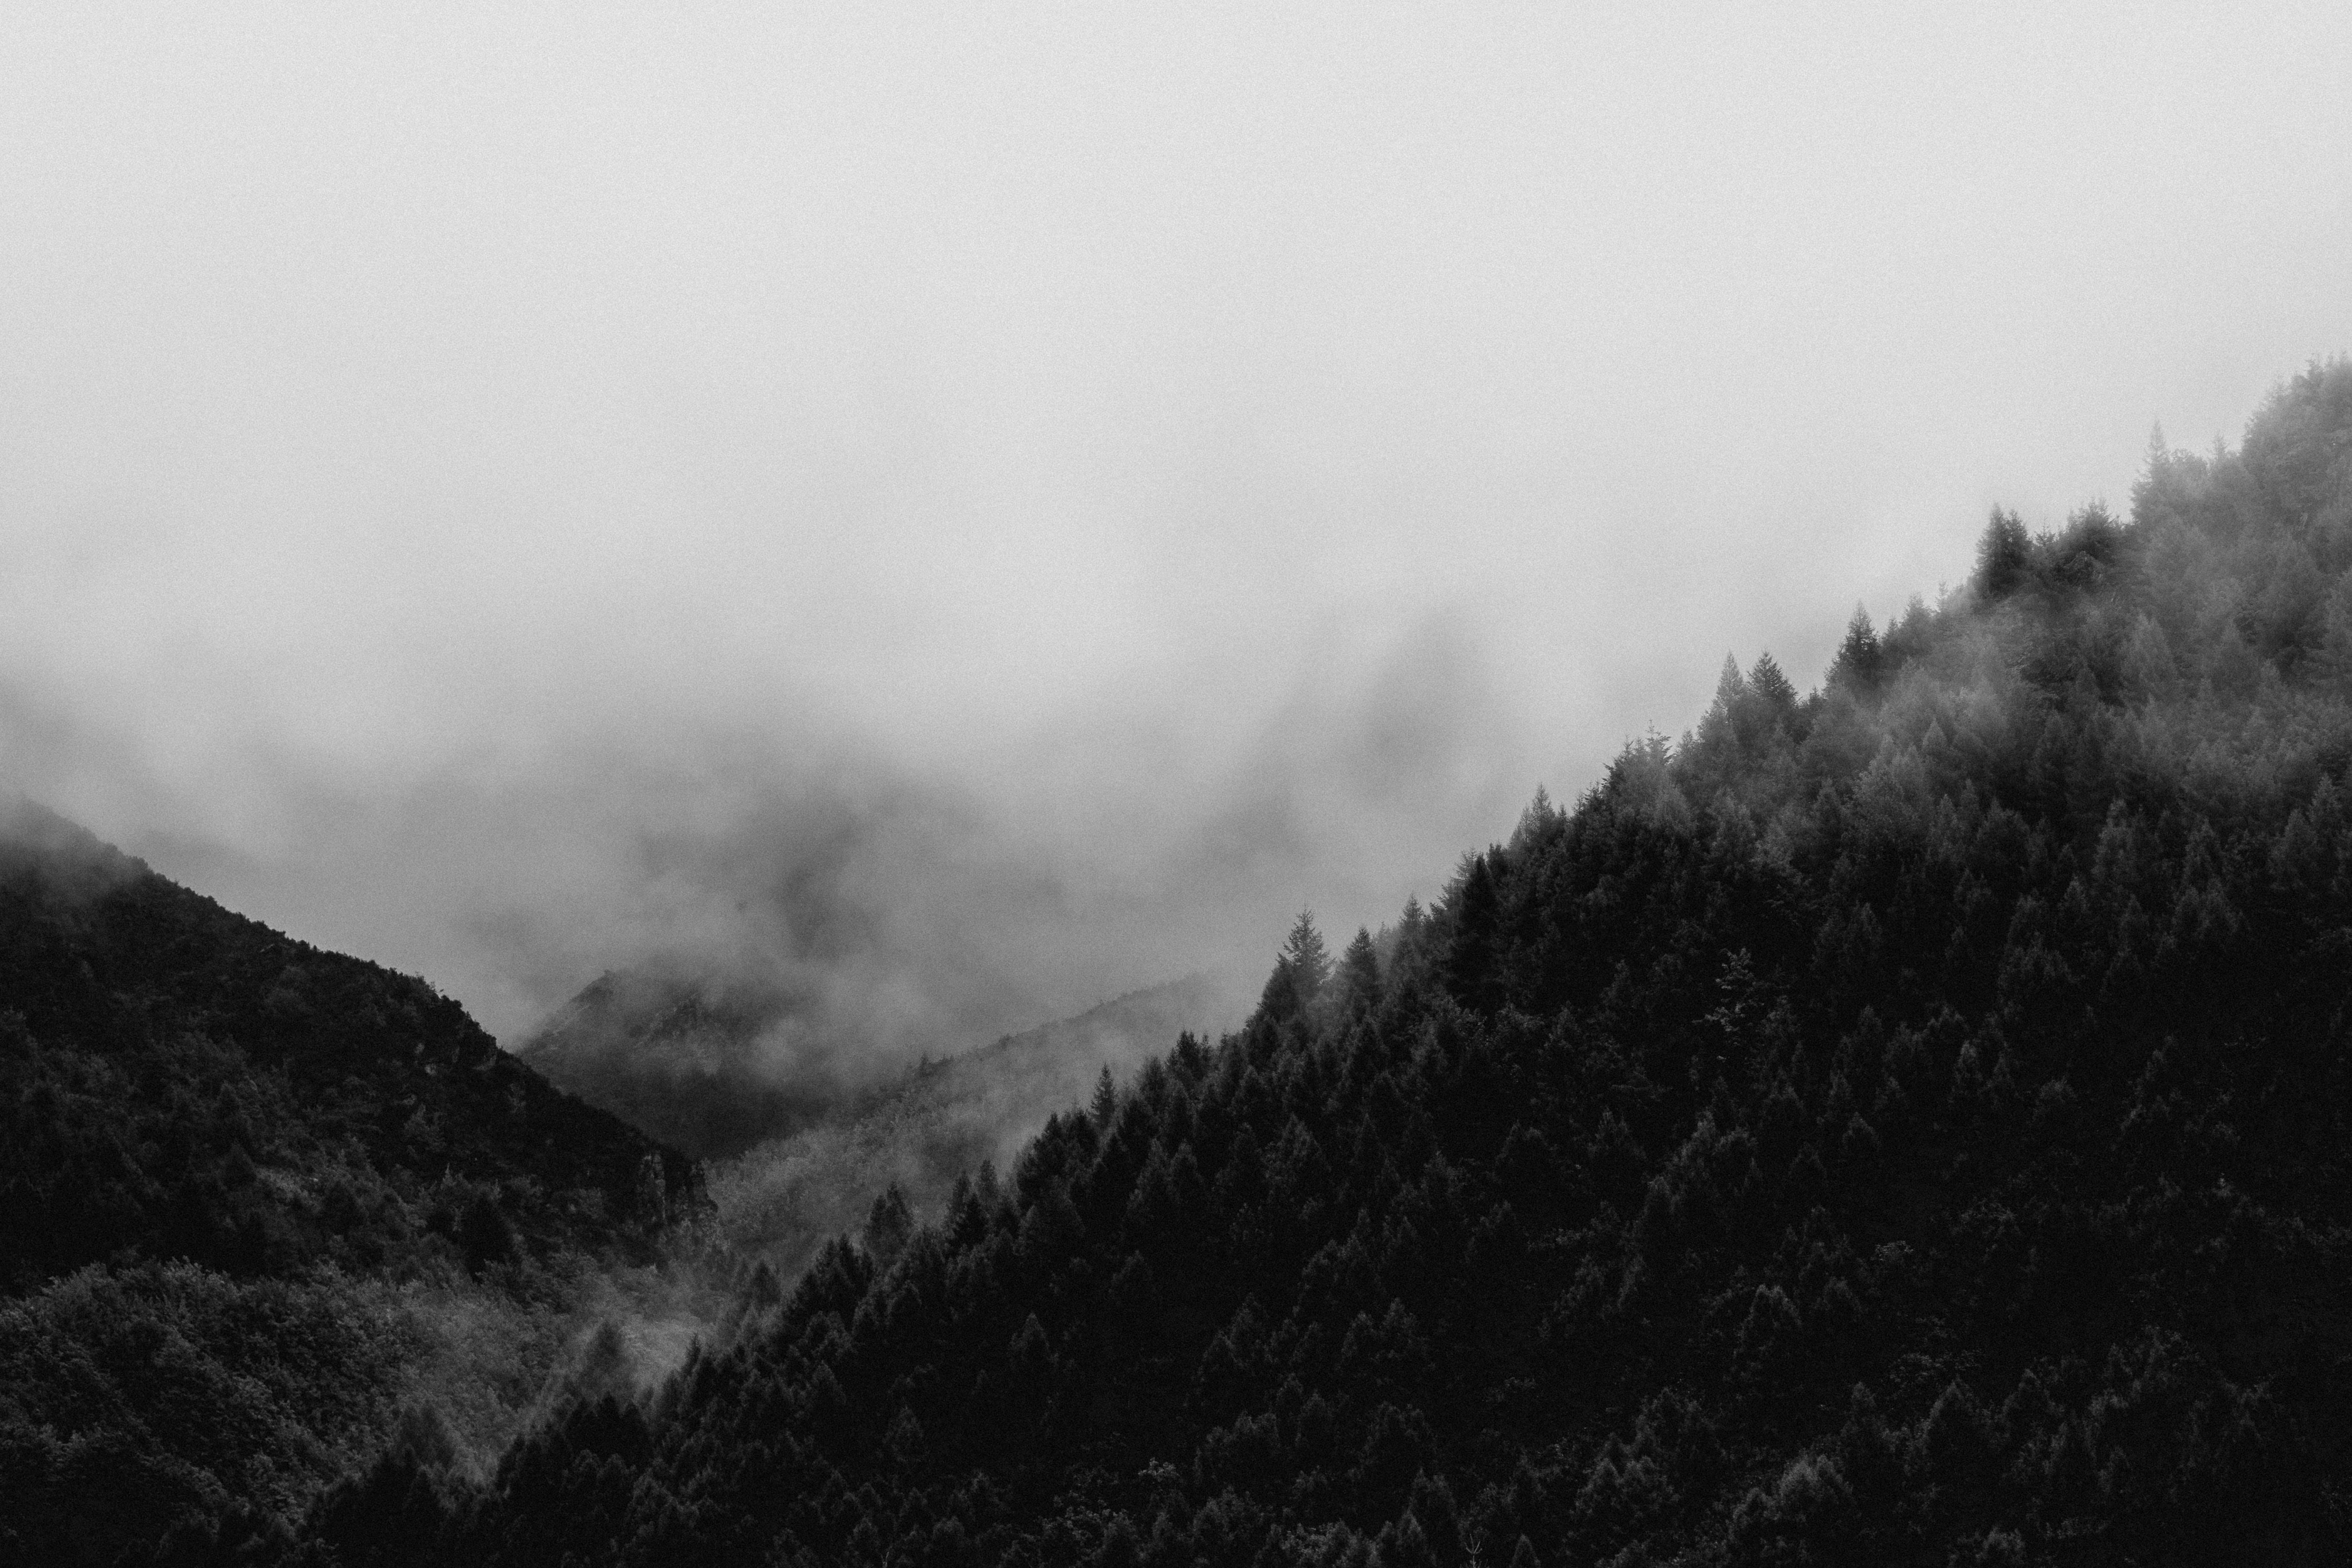 grayscale landscape photography of a foggy forest